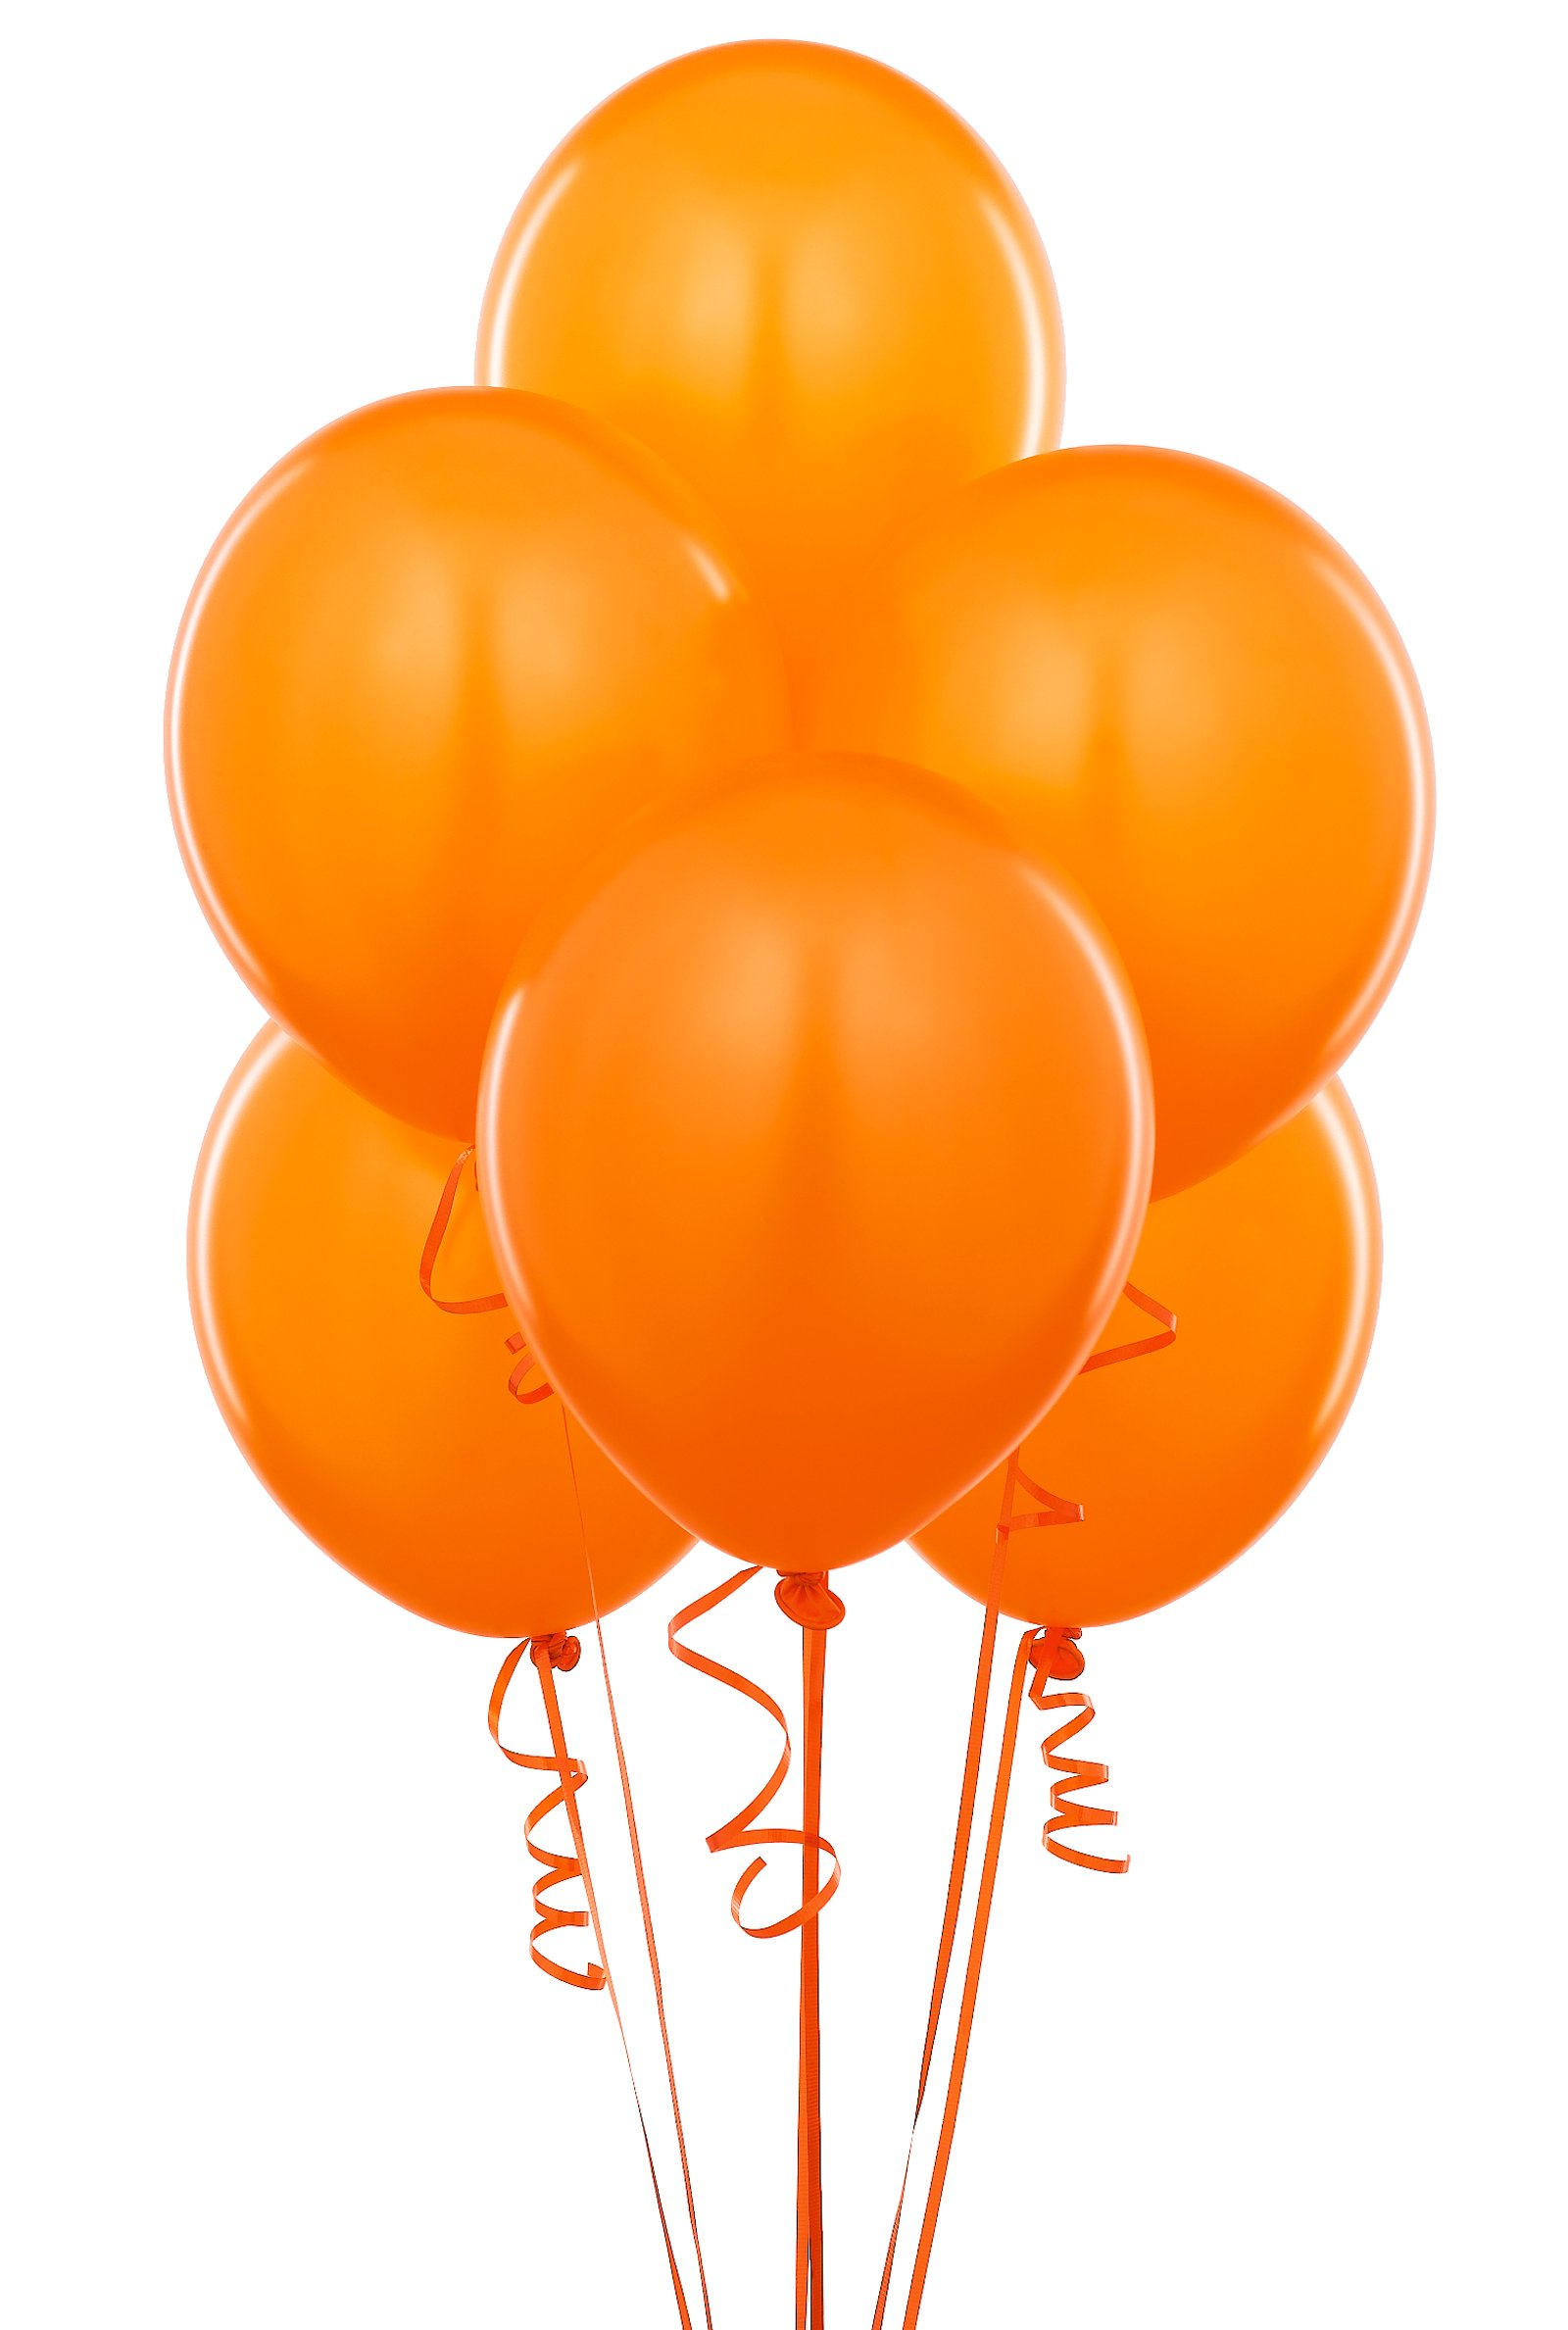 Sunkissed Orange (Orange) Balloons (6 count)